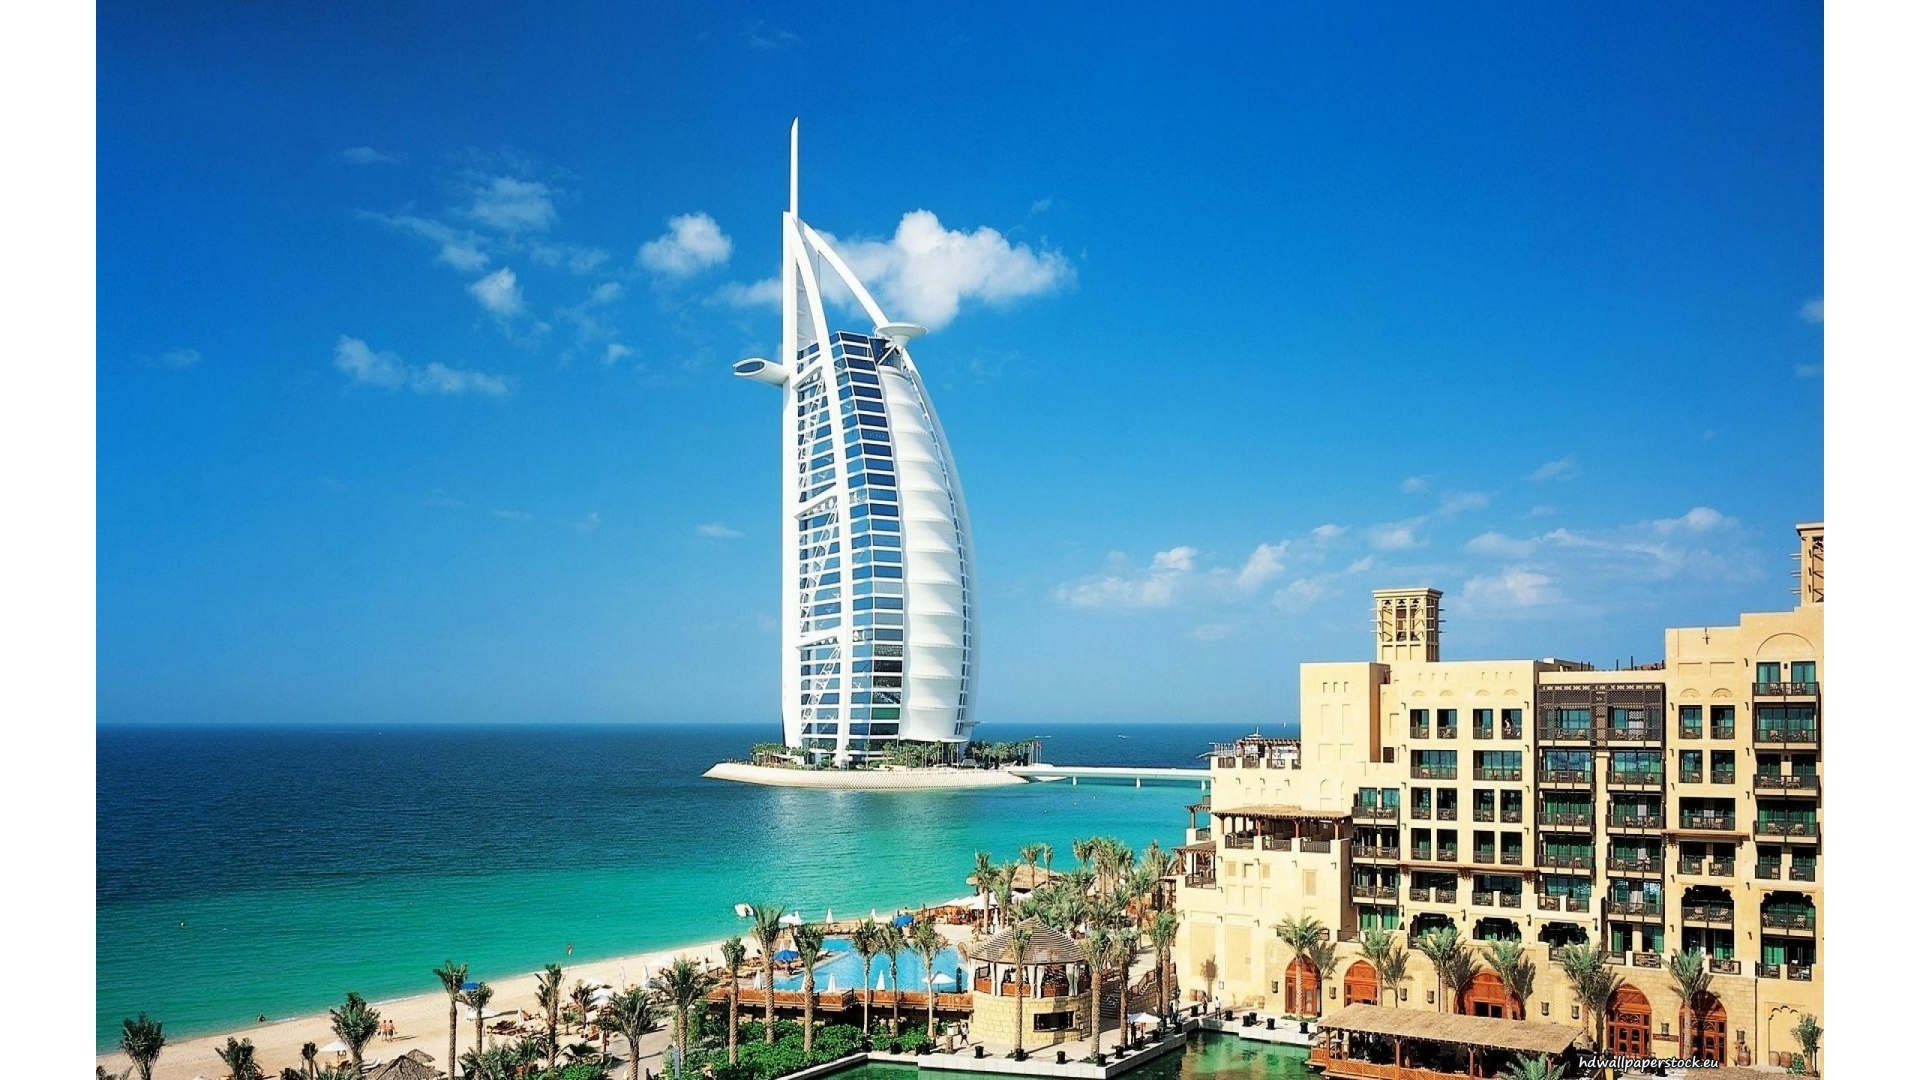 Burj al arab wallpapers pictures images for Dubai burj al arab